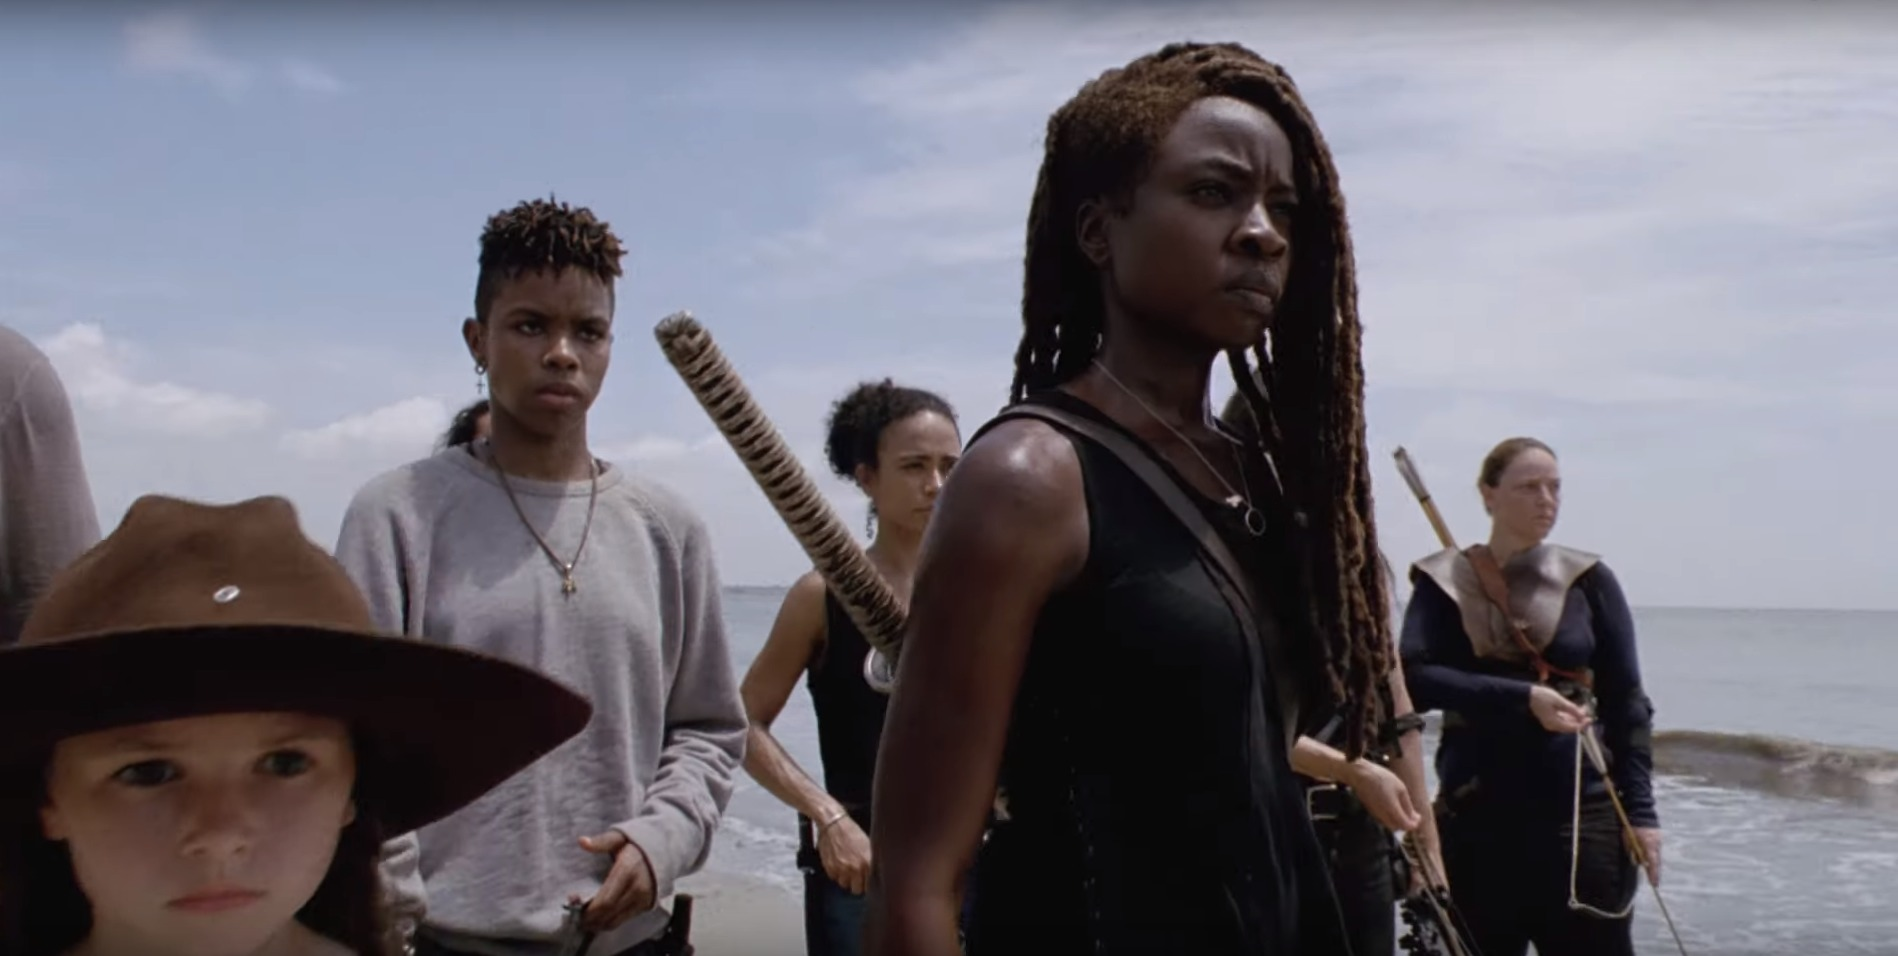 The Walking Dead - Michonne and several other survivors stand on a beach